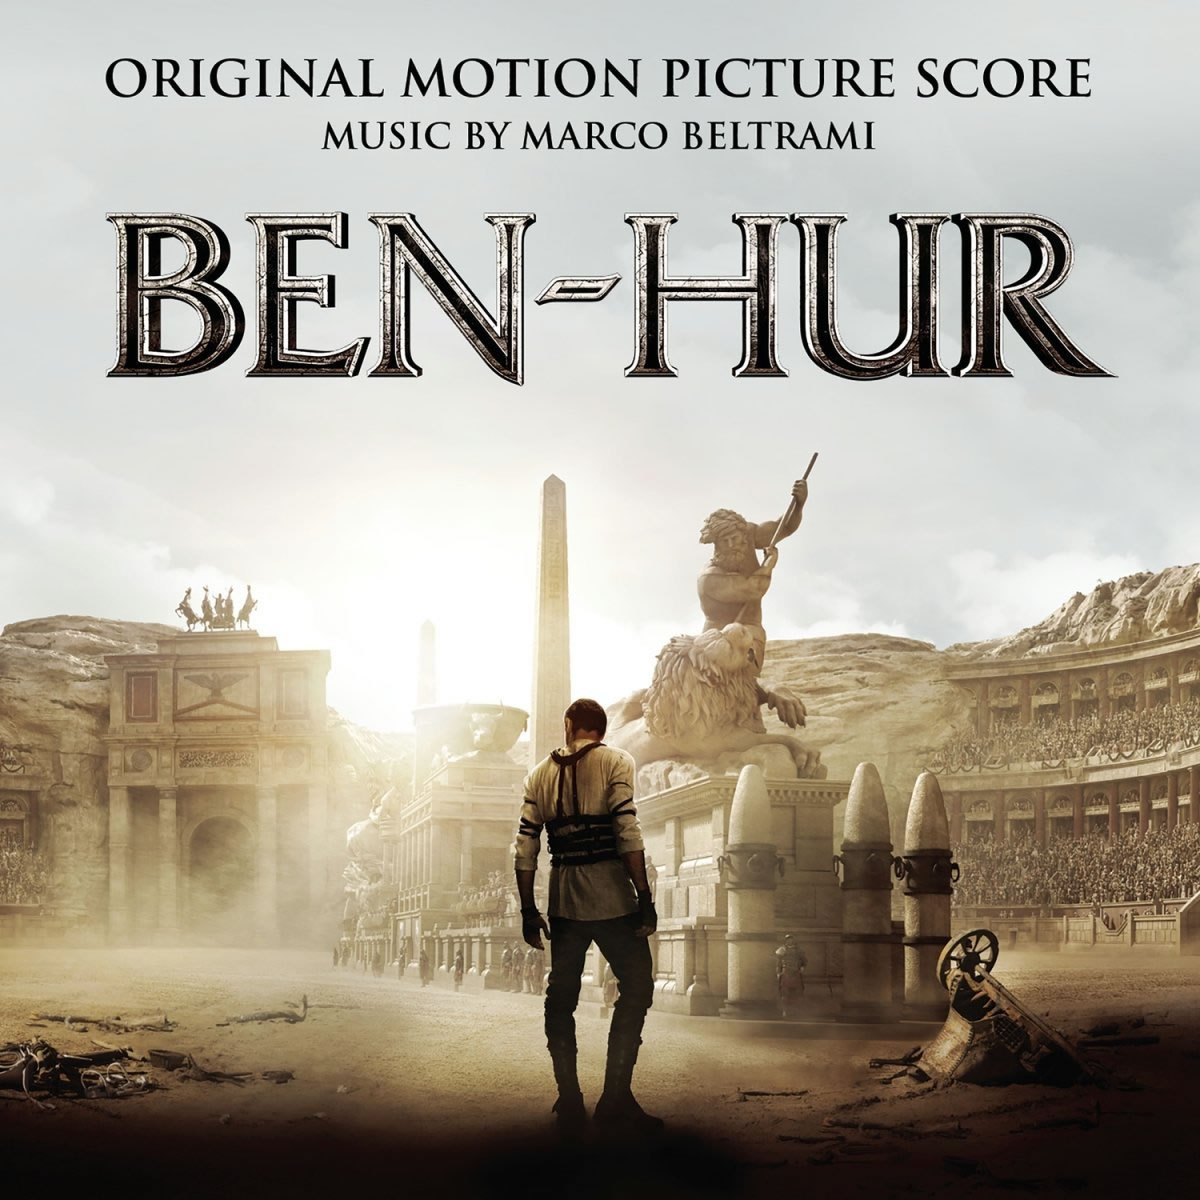 BEN-HUR - THE ORIGINAL MOTION PICTURE SOUNDTRACK (AUDIO CD)